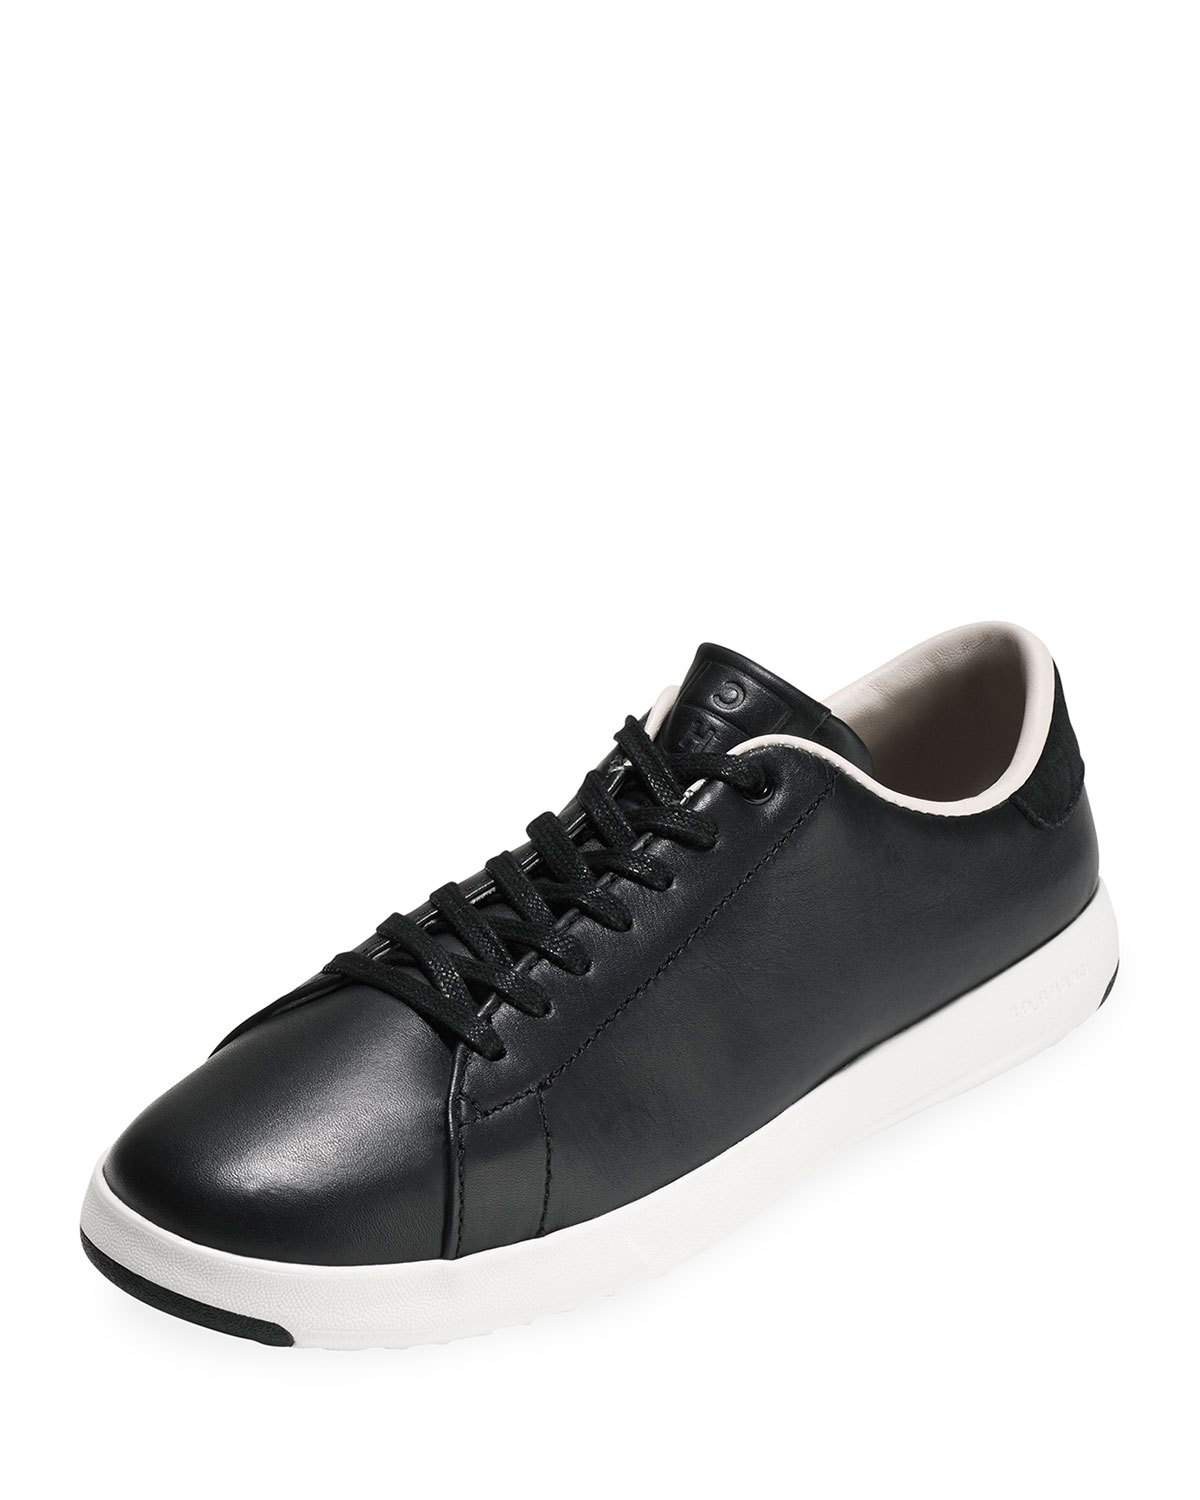 b0e7b632746 Cole Haan Women s Grandsport Leather Lace Up Sneakers In Black Leather